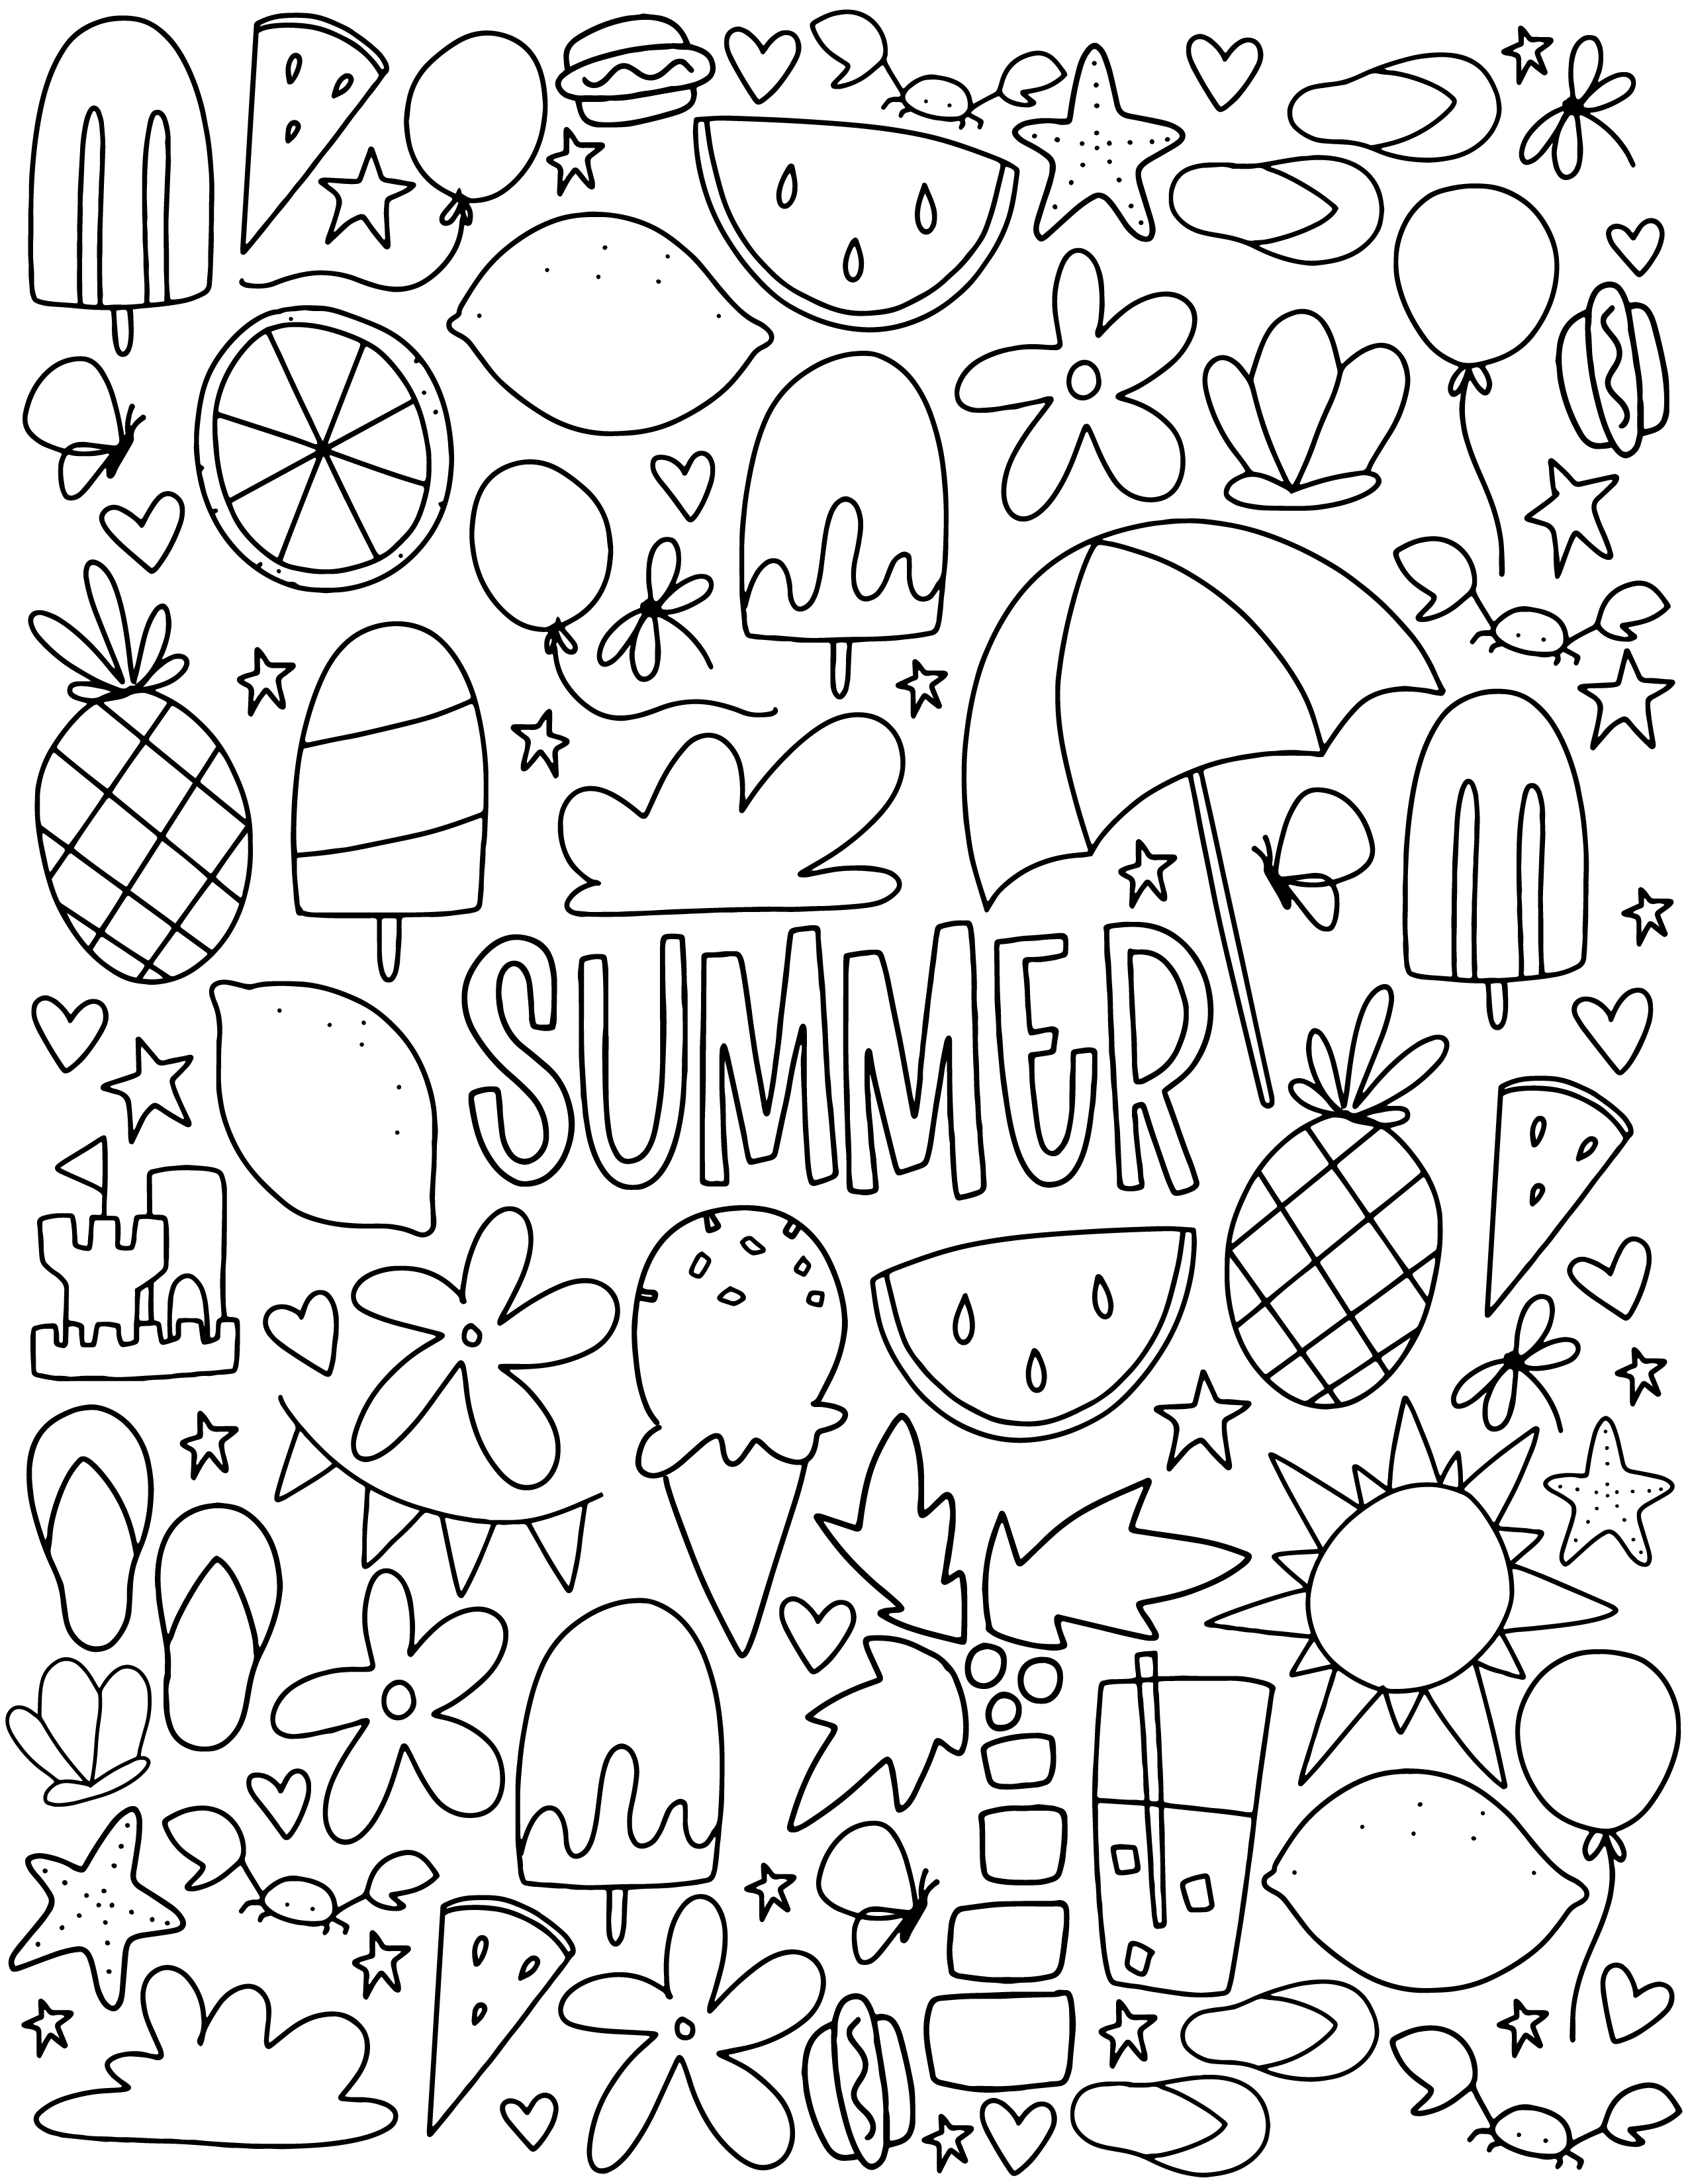 summer color sheets summer holiday coloring pages color sheets summer 1 1